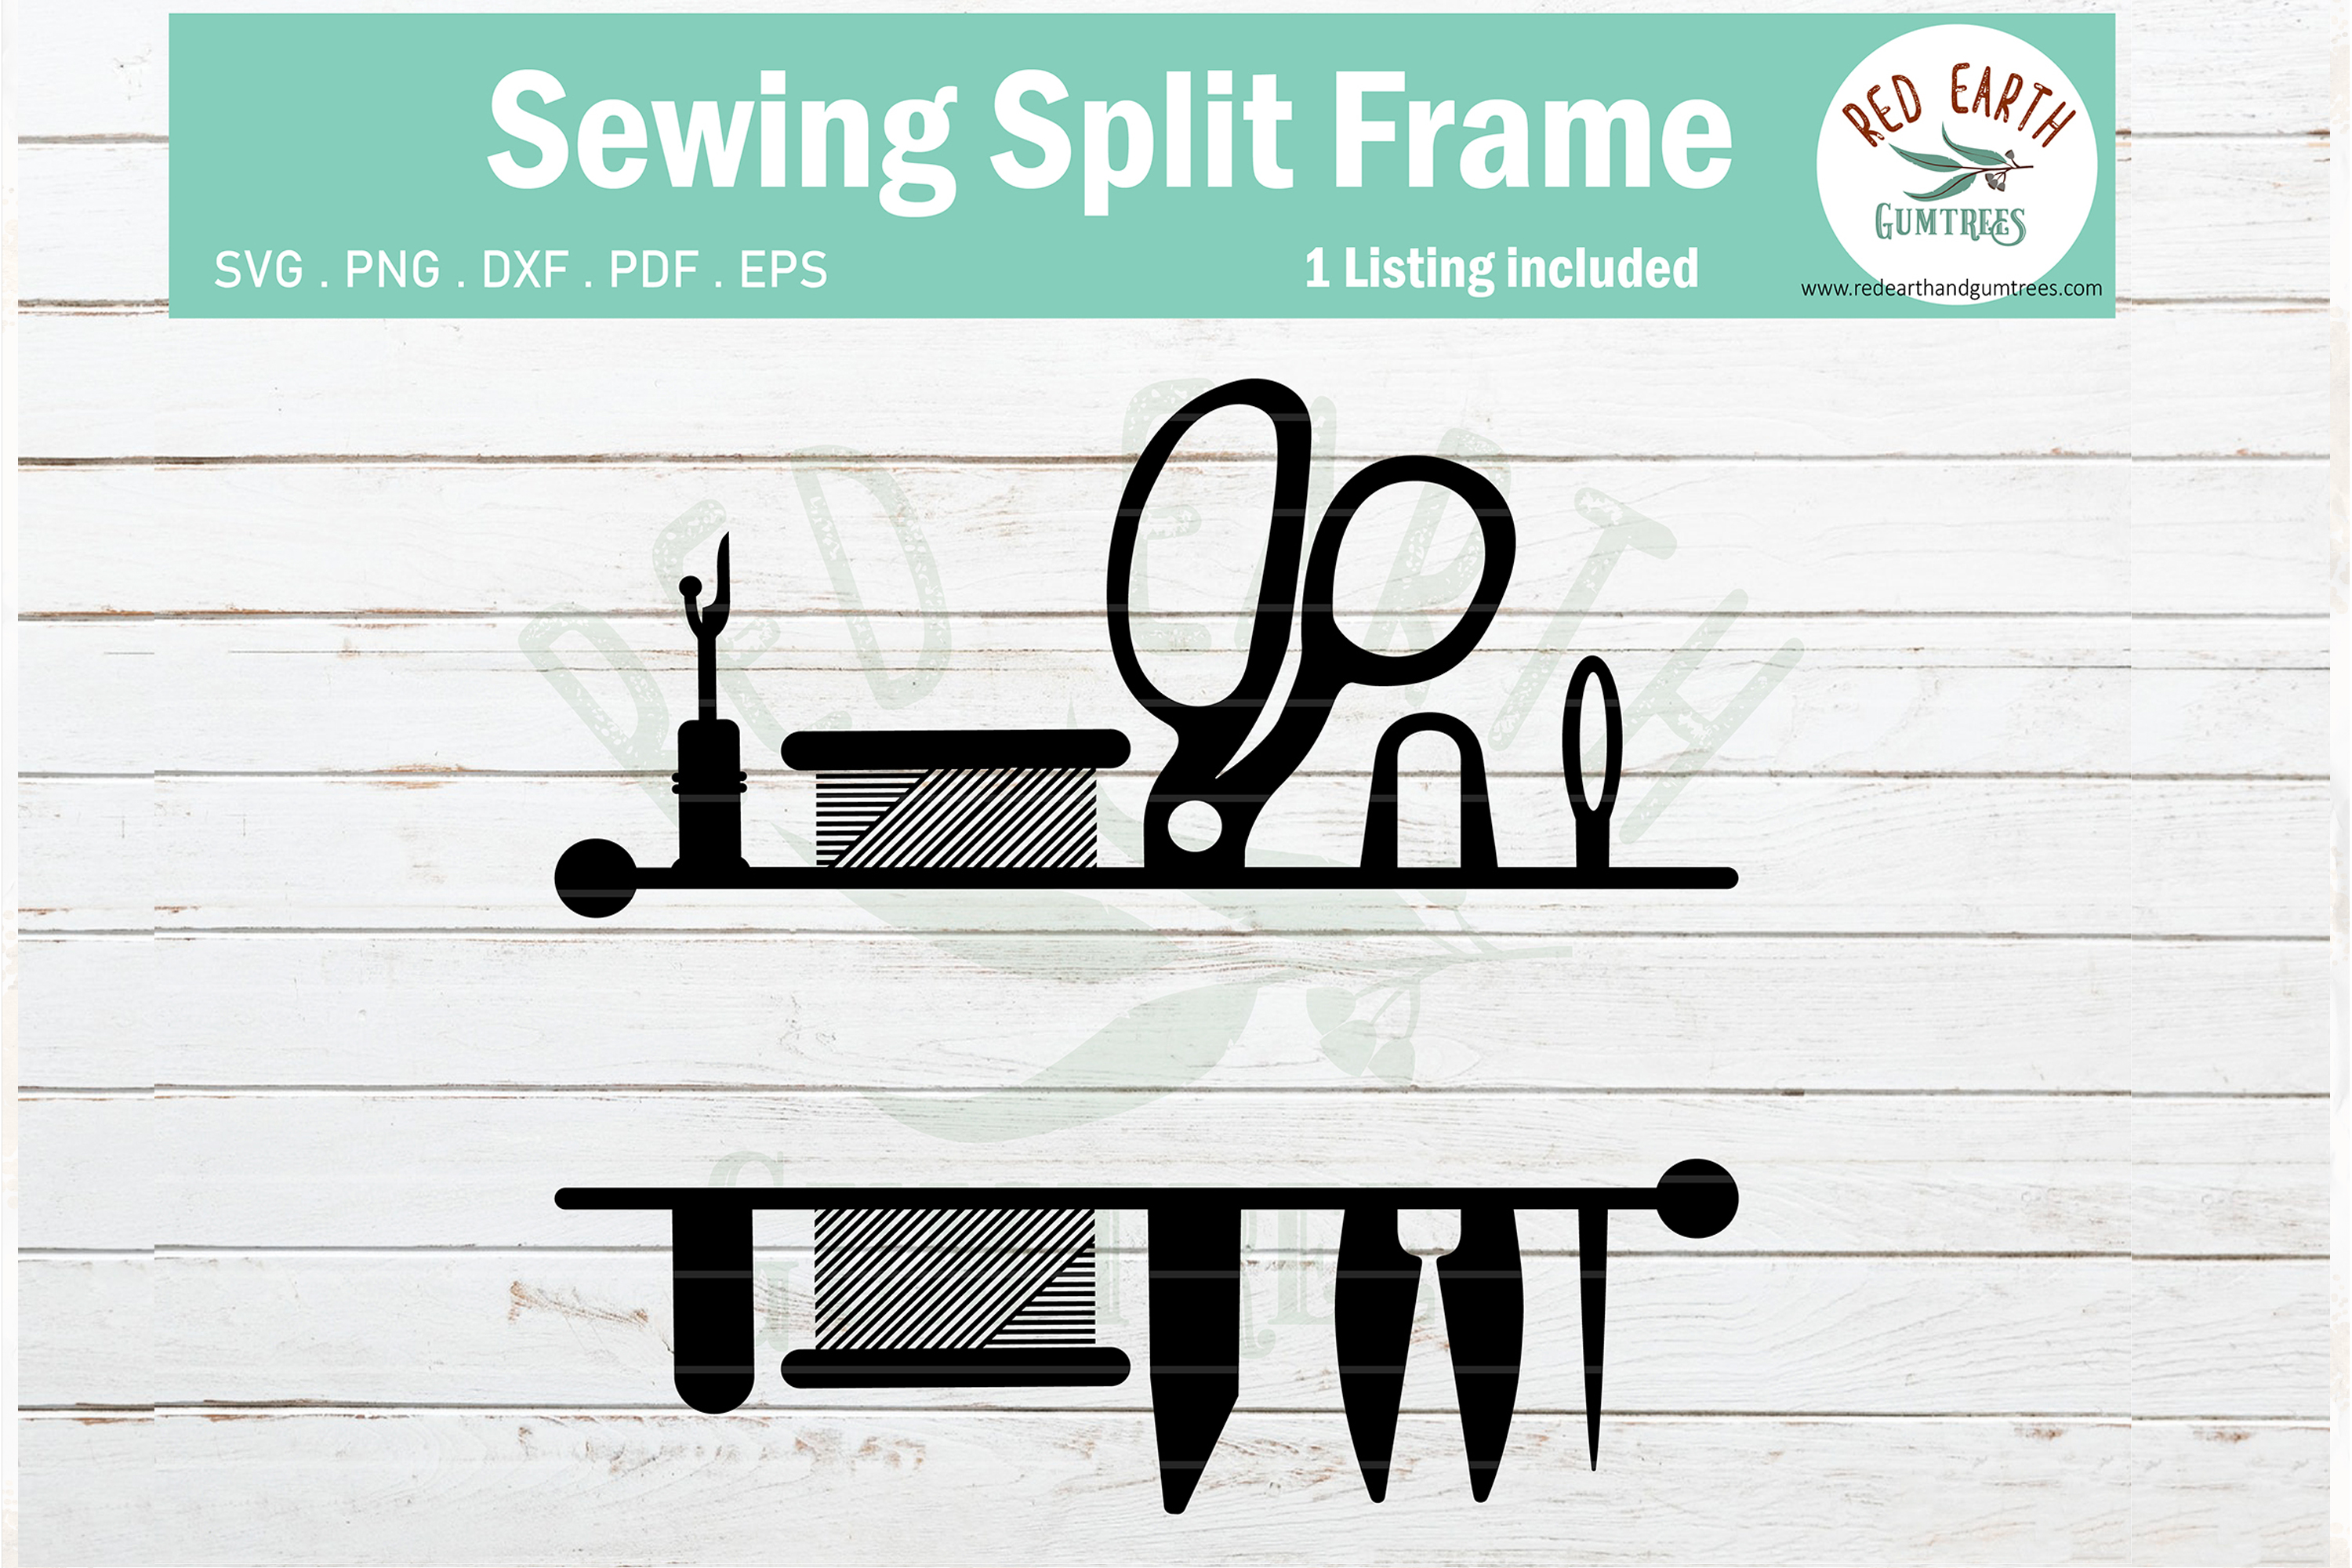 Download Free Sewing Split Monogram Frame Svg Graphic By Redearth And Gumtrees for Cricut Explore, Silhouette and other cutting machines.